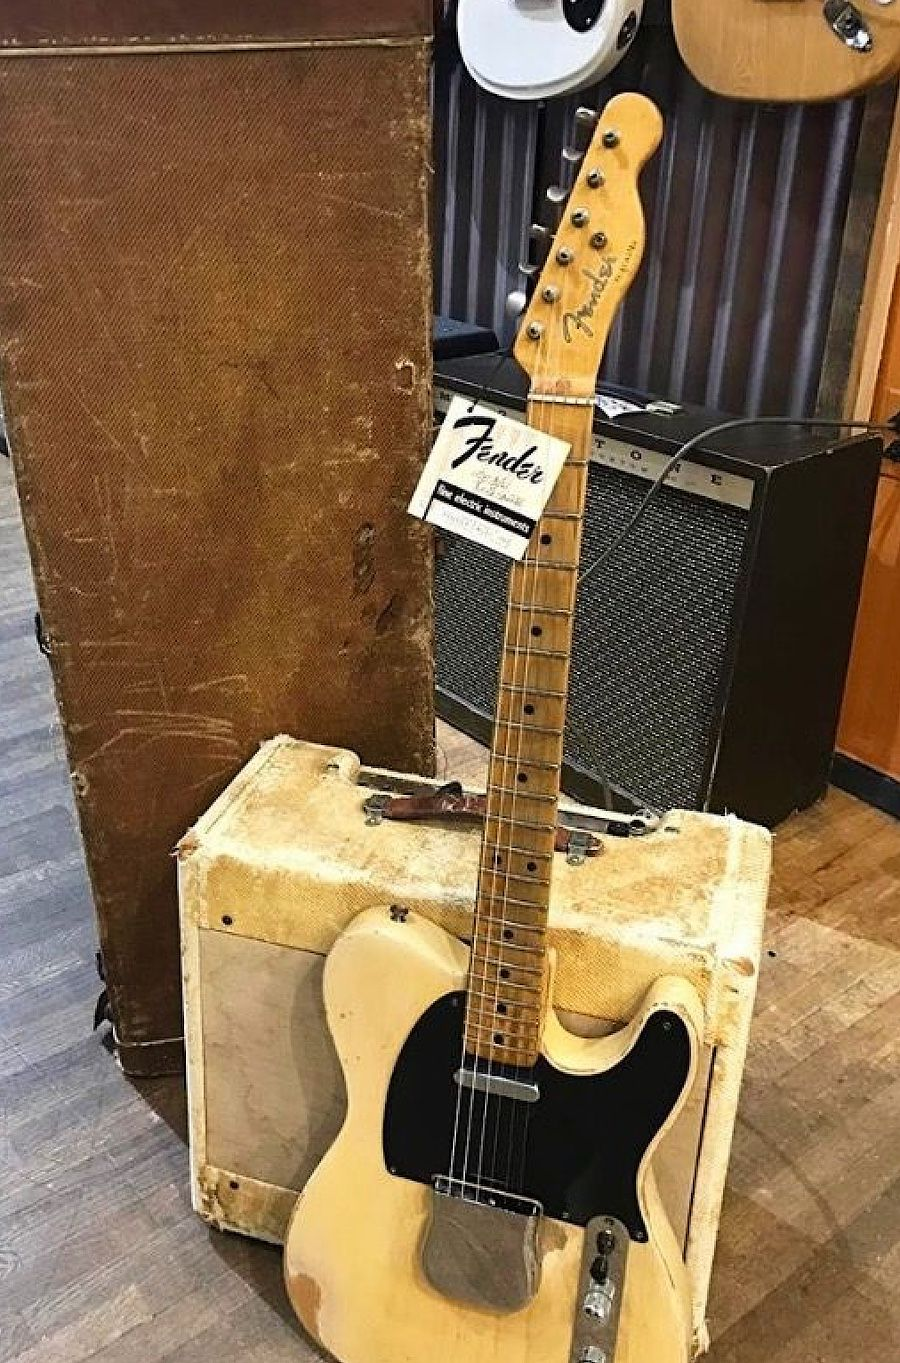 Fender Telecaster and Tweed amp of unknown dates